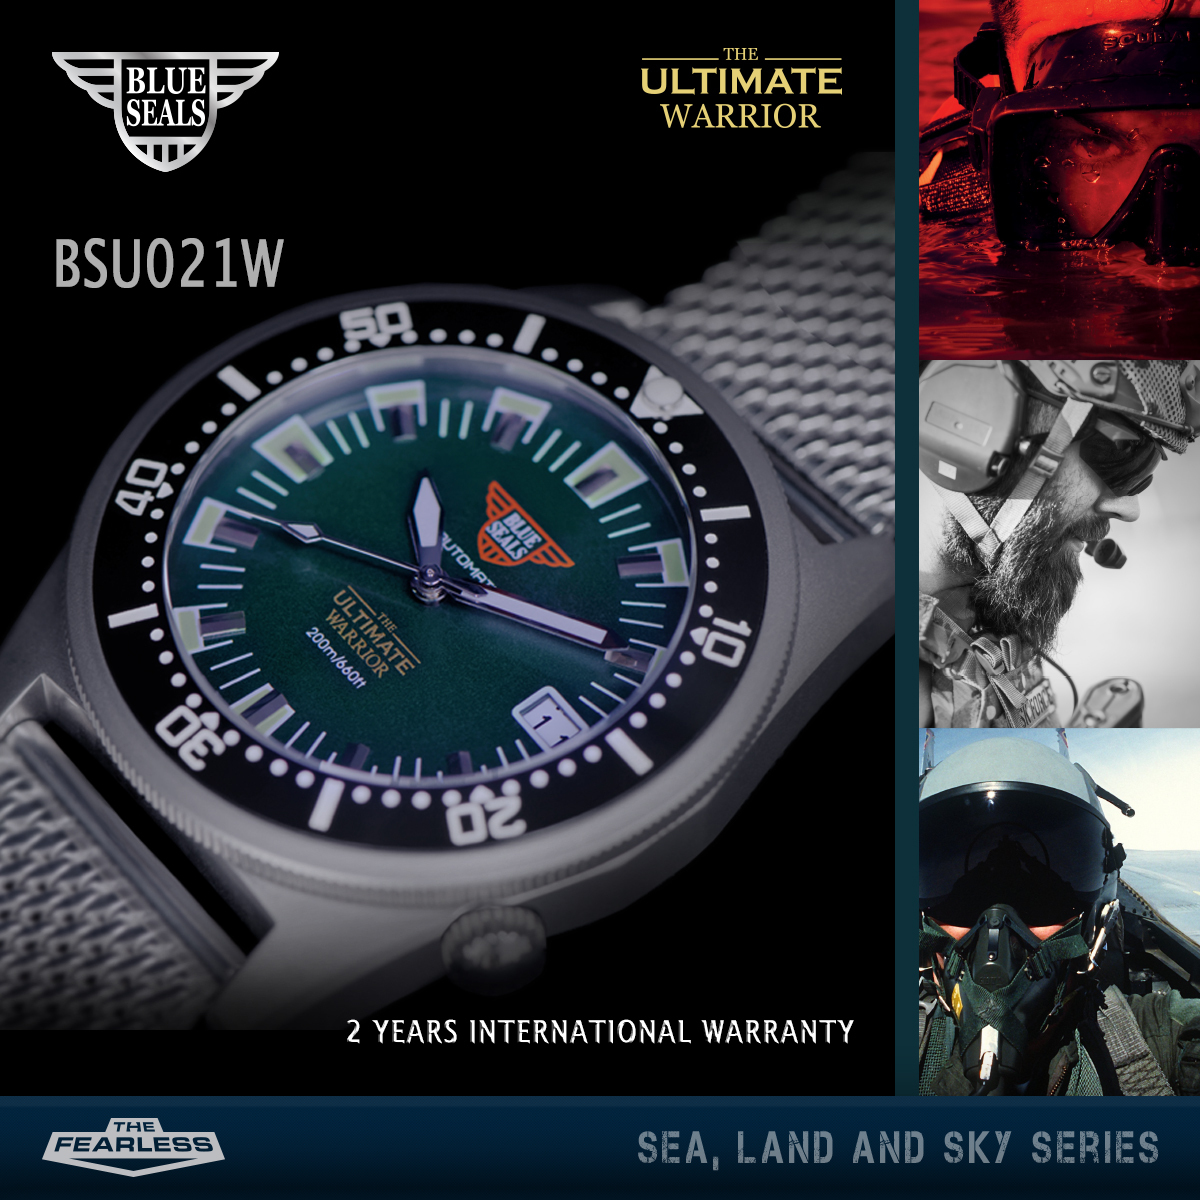 Bs1 ultimatewar car bsu021w 1200x1200